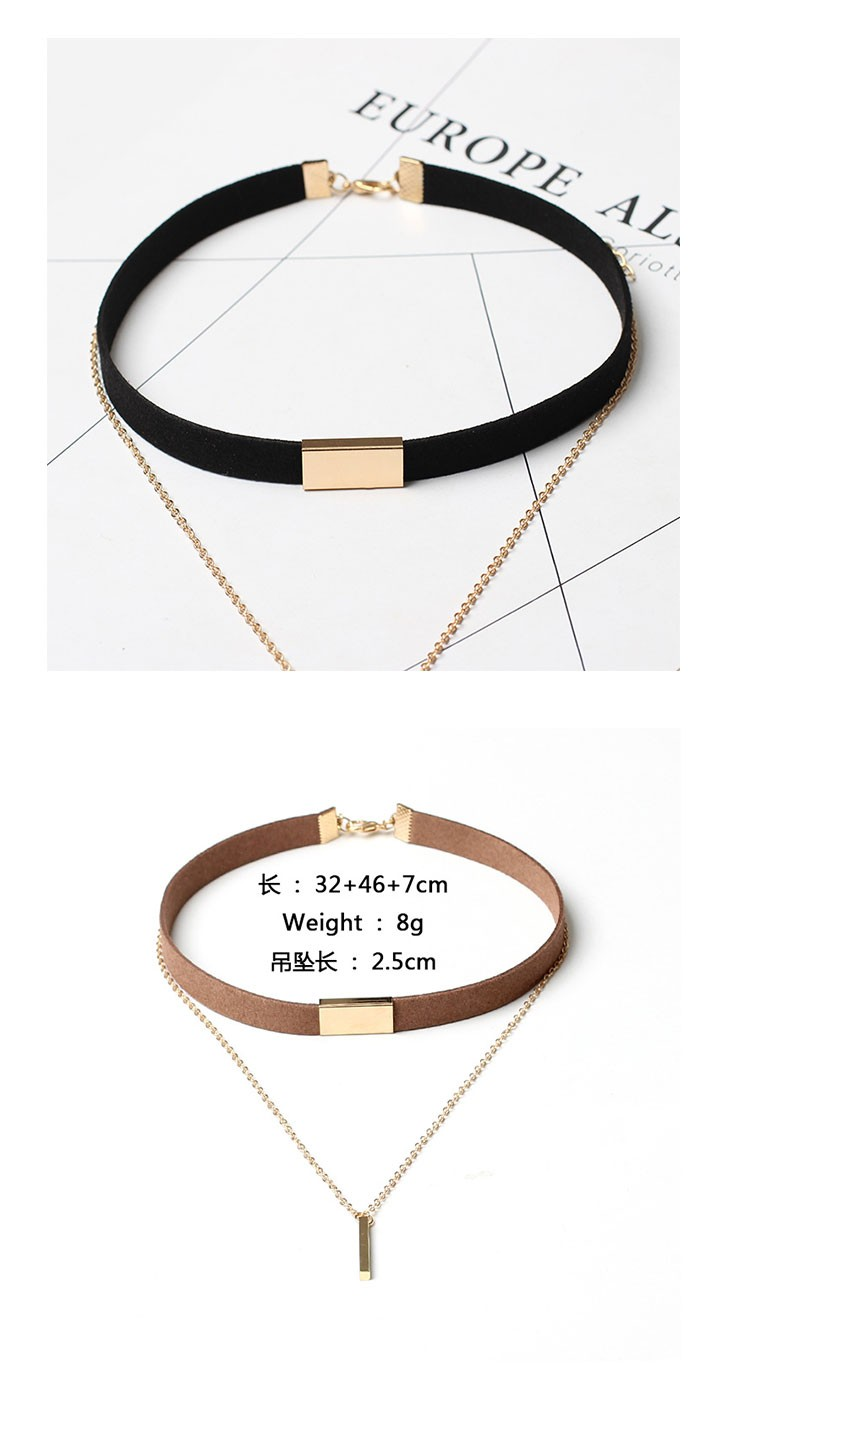 880da83fb47 New Black Velvet Choker Necklace Gold Chain Bar Chokers Chocker Necklace  For Women collares mujer collier ras du cou